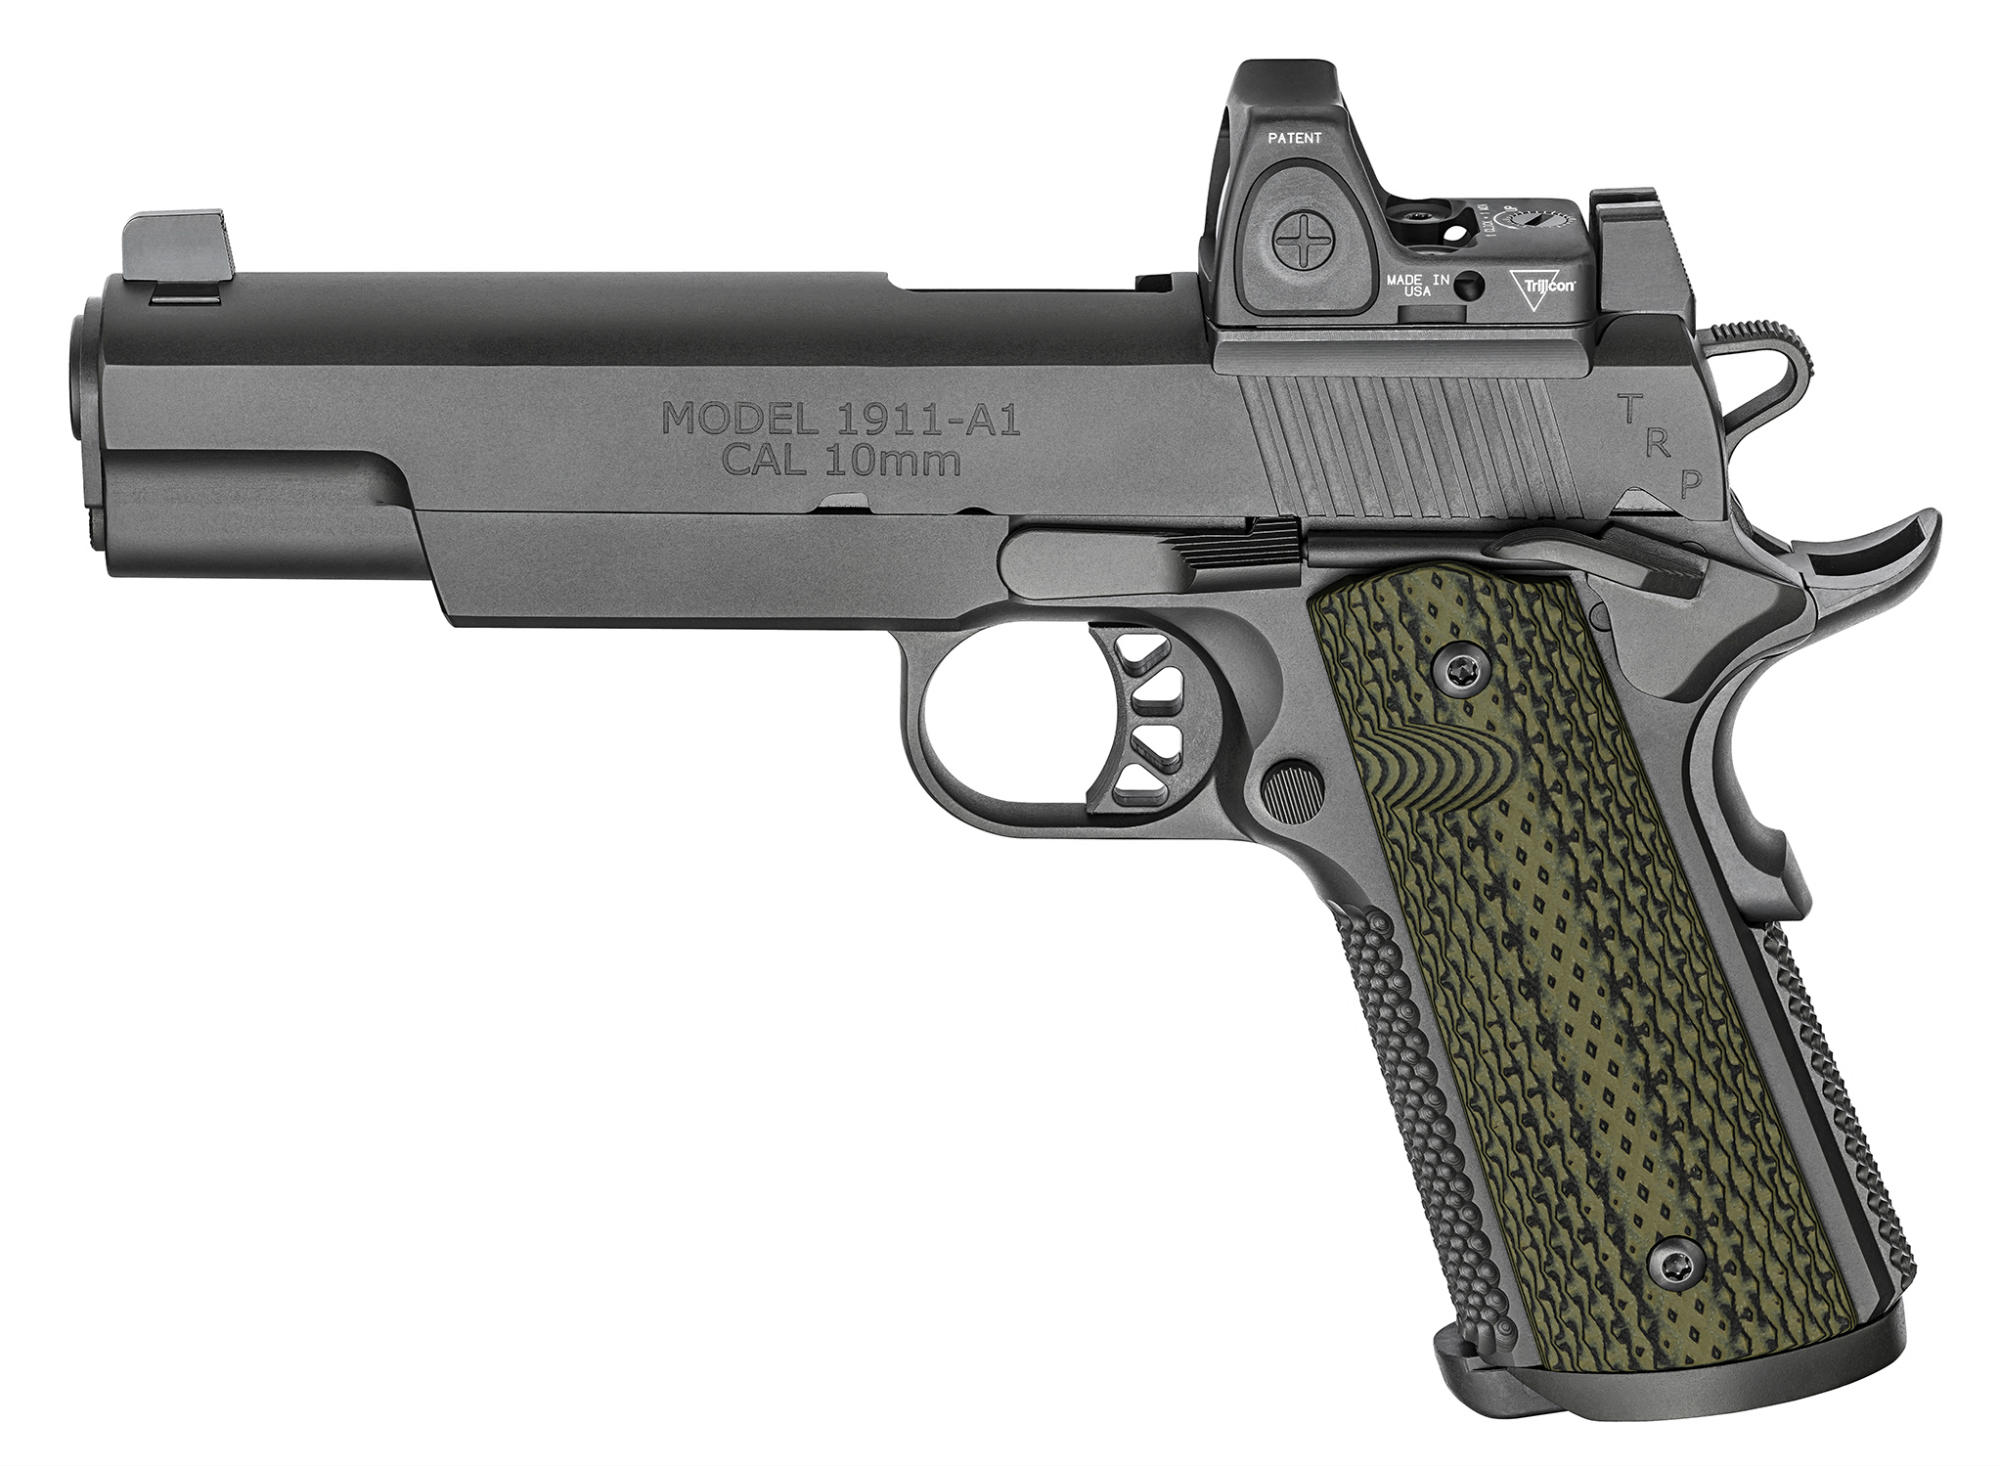 Springfield Armory 1911 TRP 10mm RMR pistol, left side